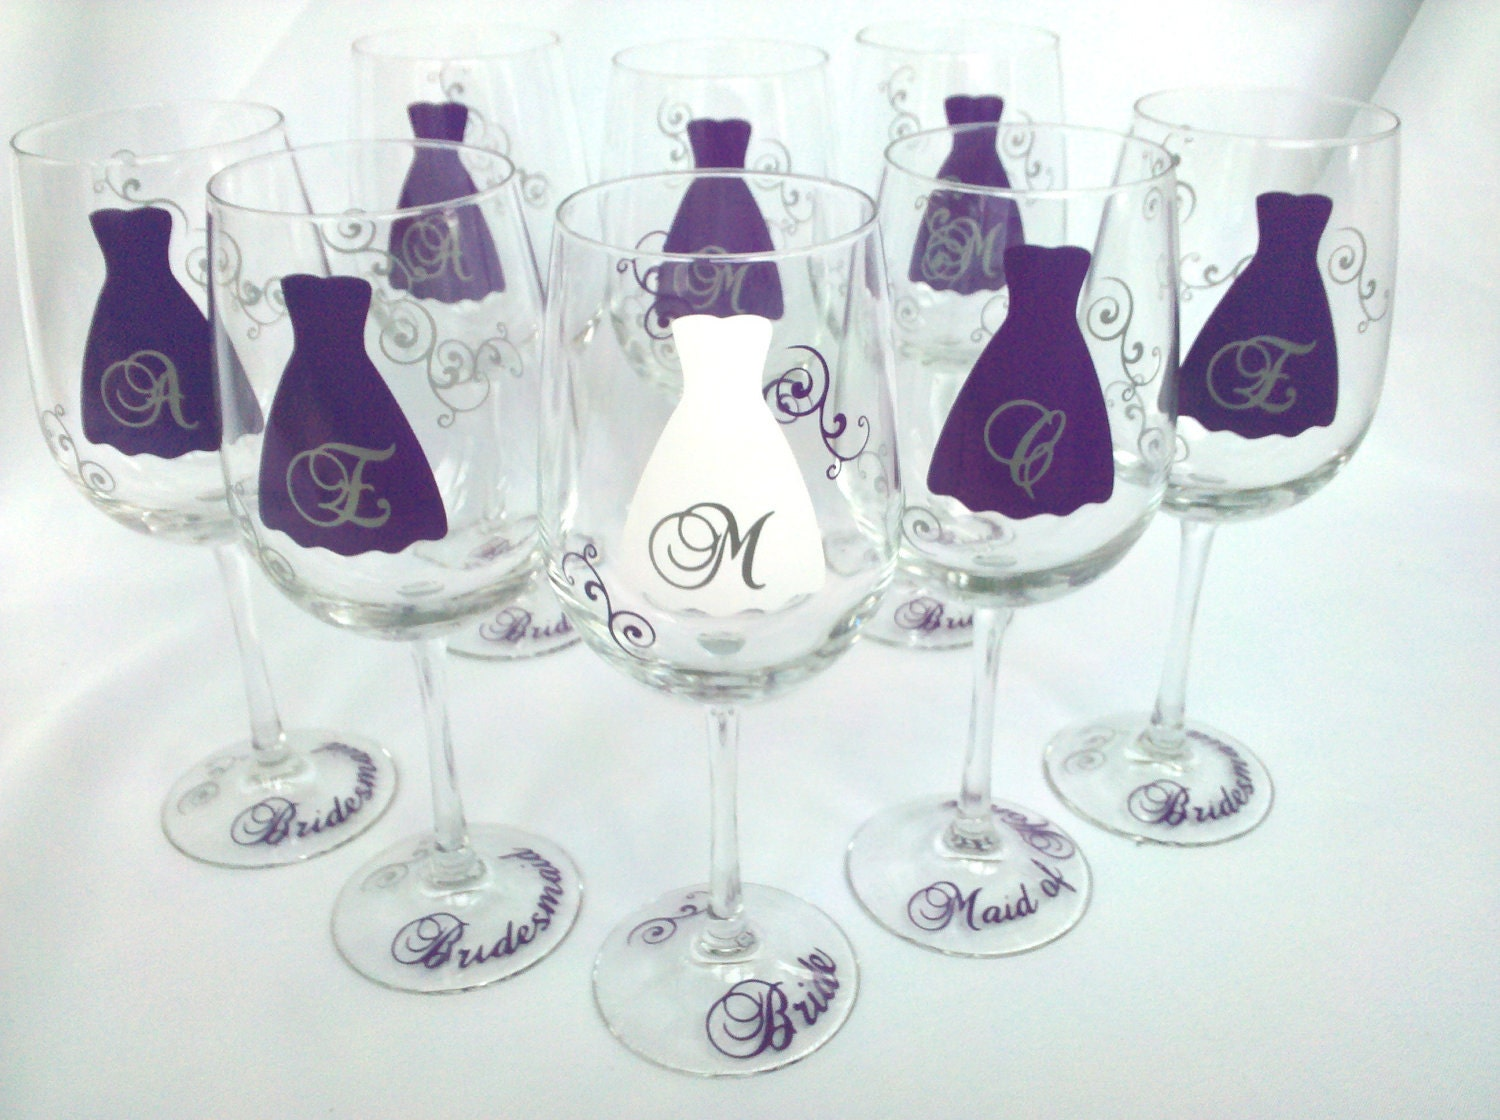 Monogram Wedding Gift Ideas: Set Of 6 Bridesmaid Wine Glasses Set Of 6 Personalized